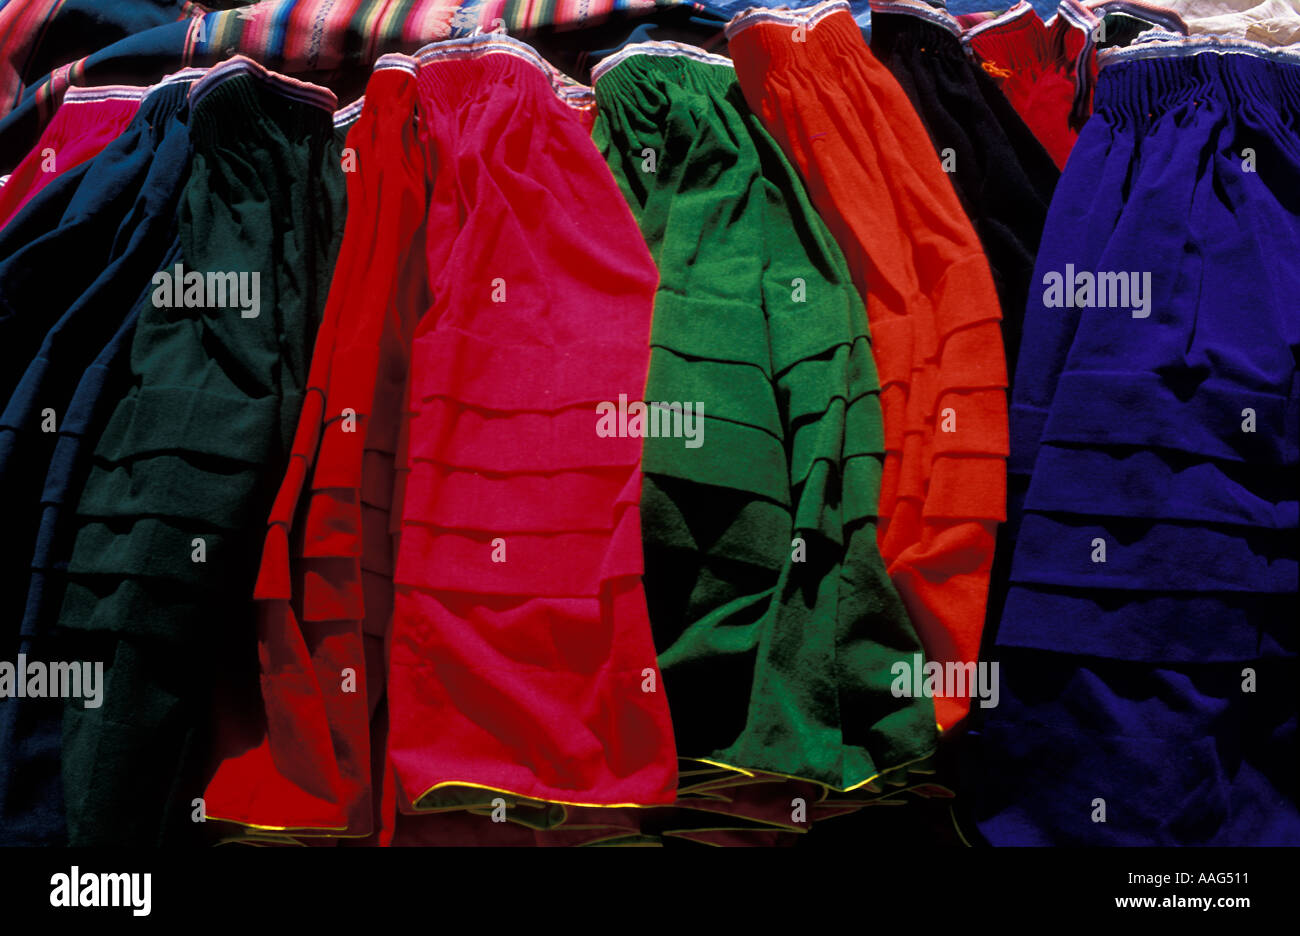 Selection of bright skirts in the style popular on Taquile Amantani islands Amantani Wednesday market Lake Titicaca Peru - Stock Image